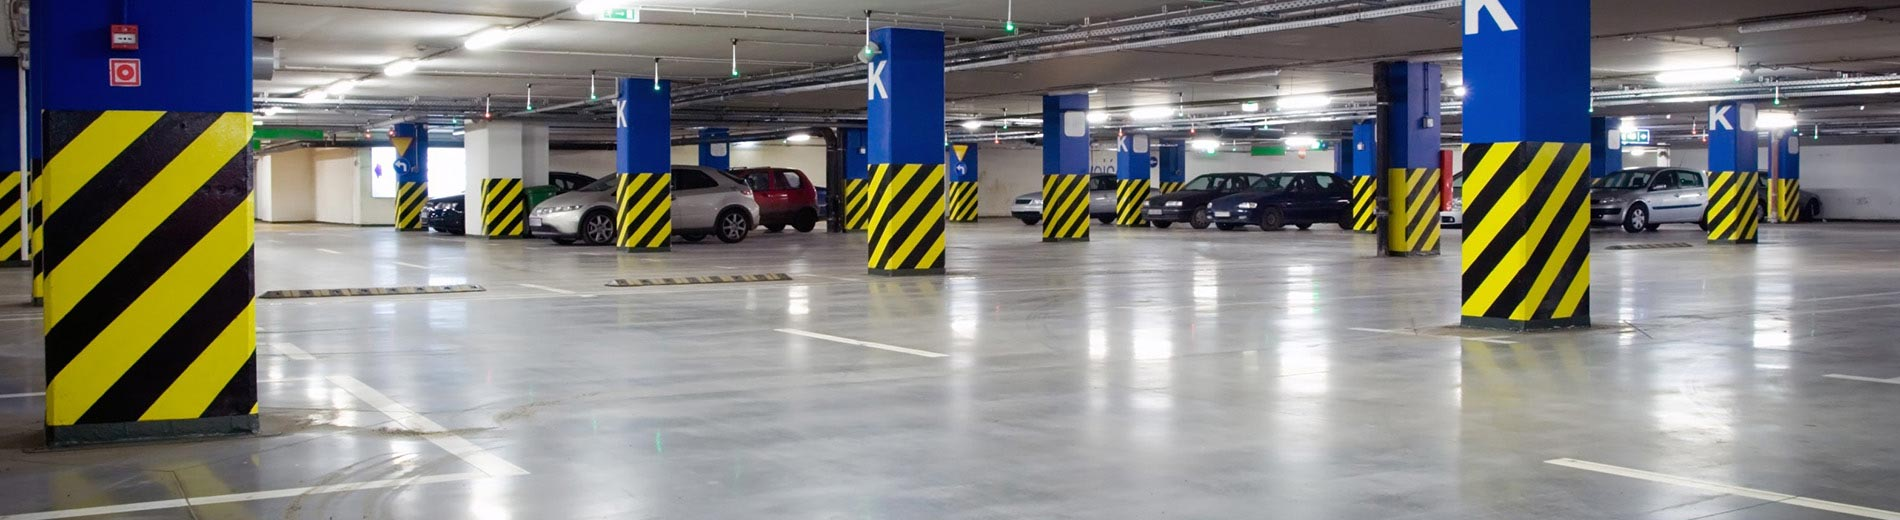 pintura-suelos-parking-y-garages_sevilla